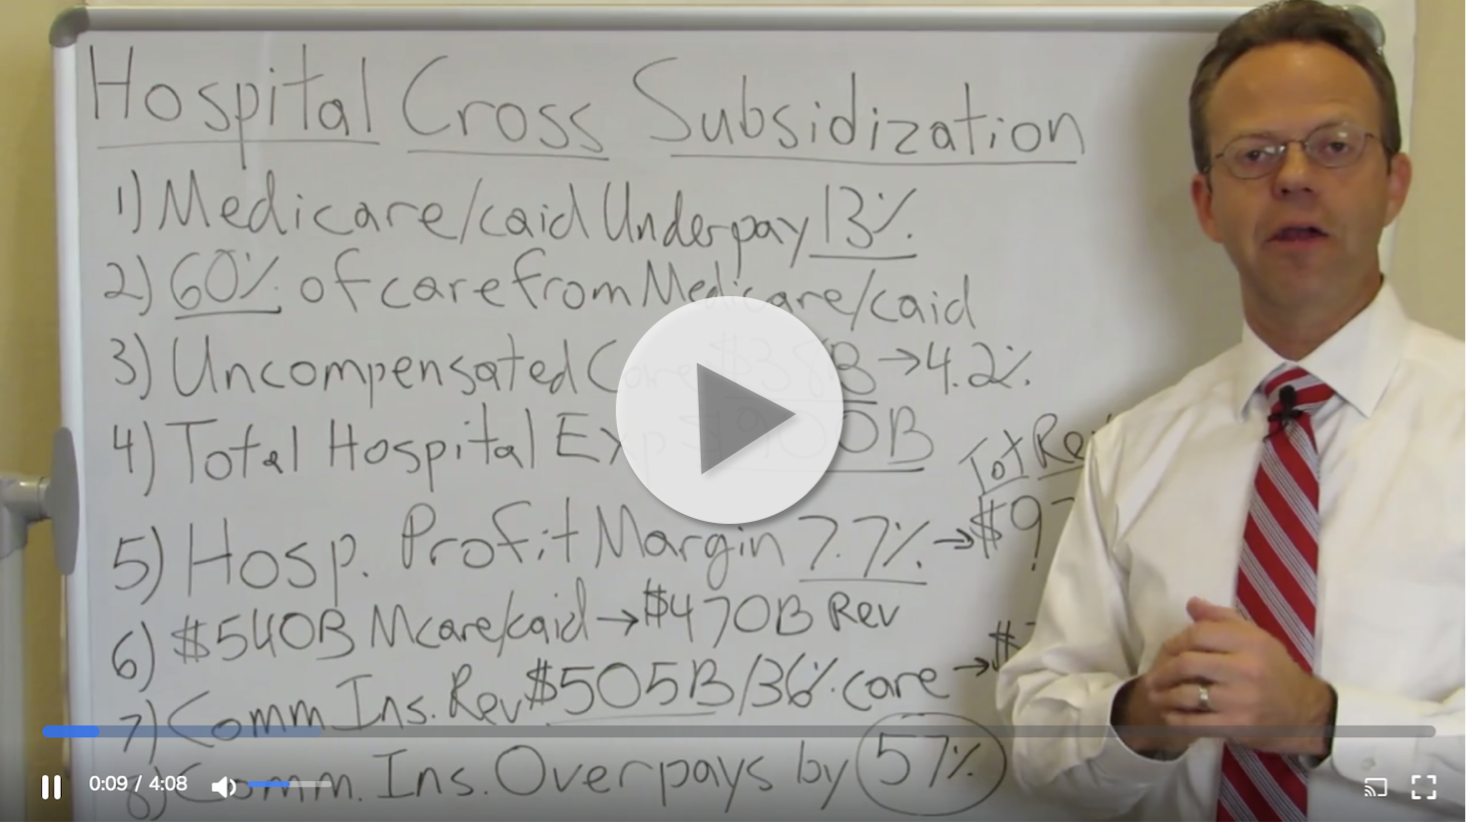 Hospital cross subsidization